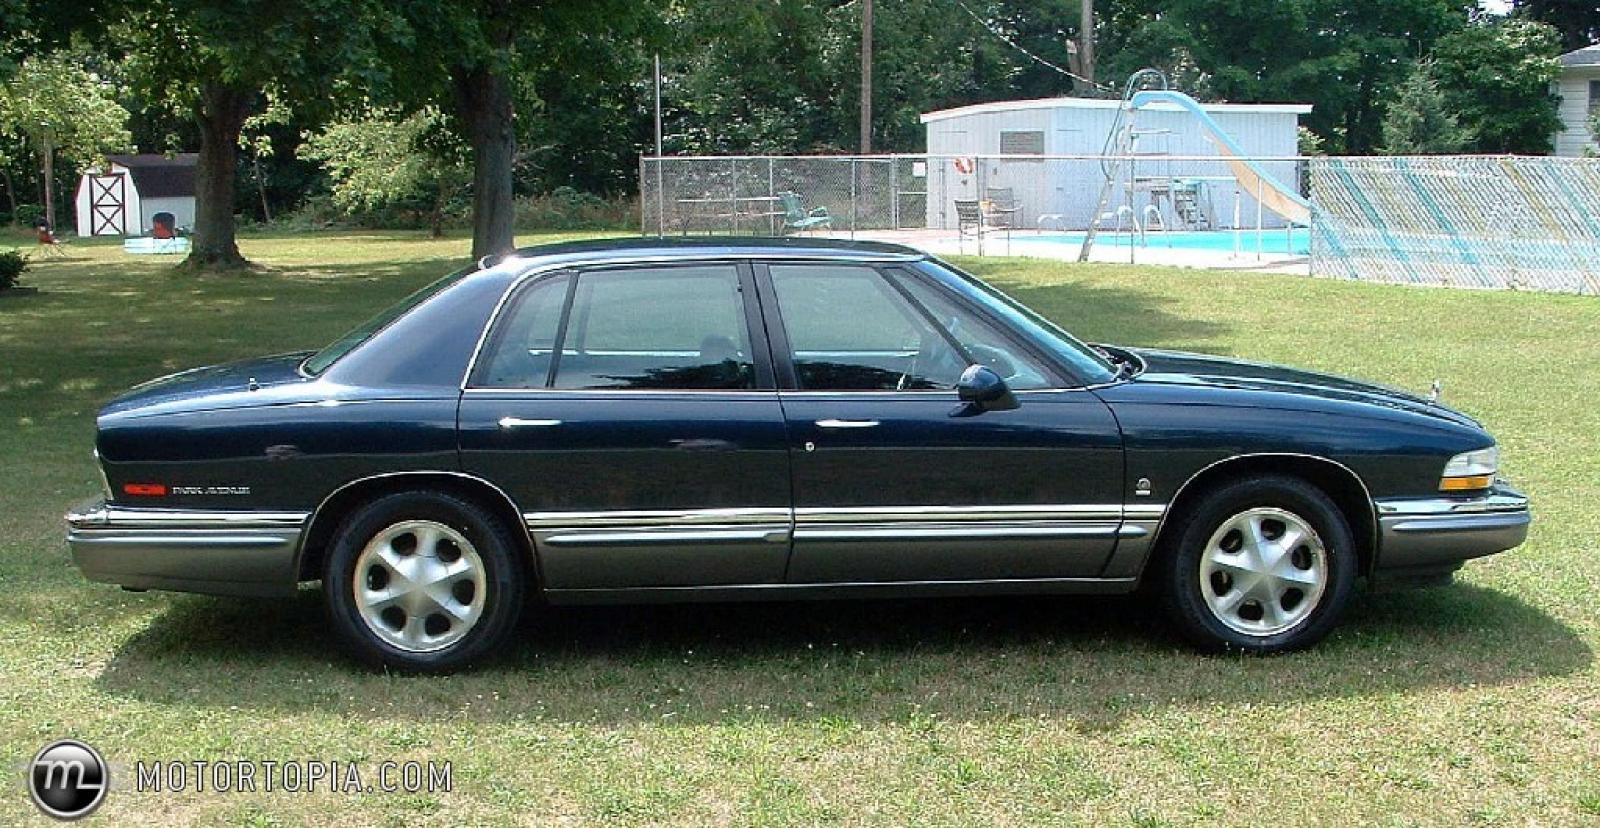 1992 Buick Park Avenue Information And Photos Zombiedrive 92 Century Wiring Diagram 800 1024 1280 1600 Origin